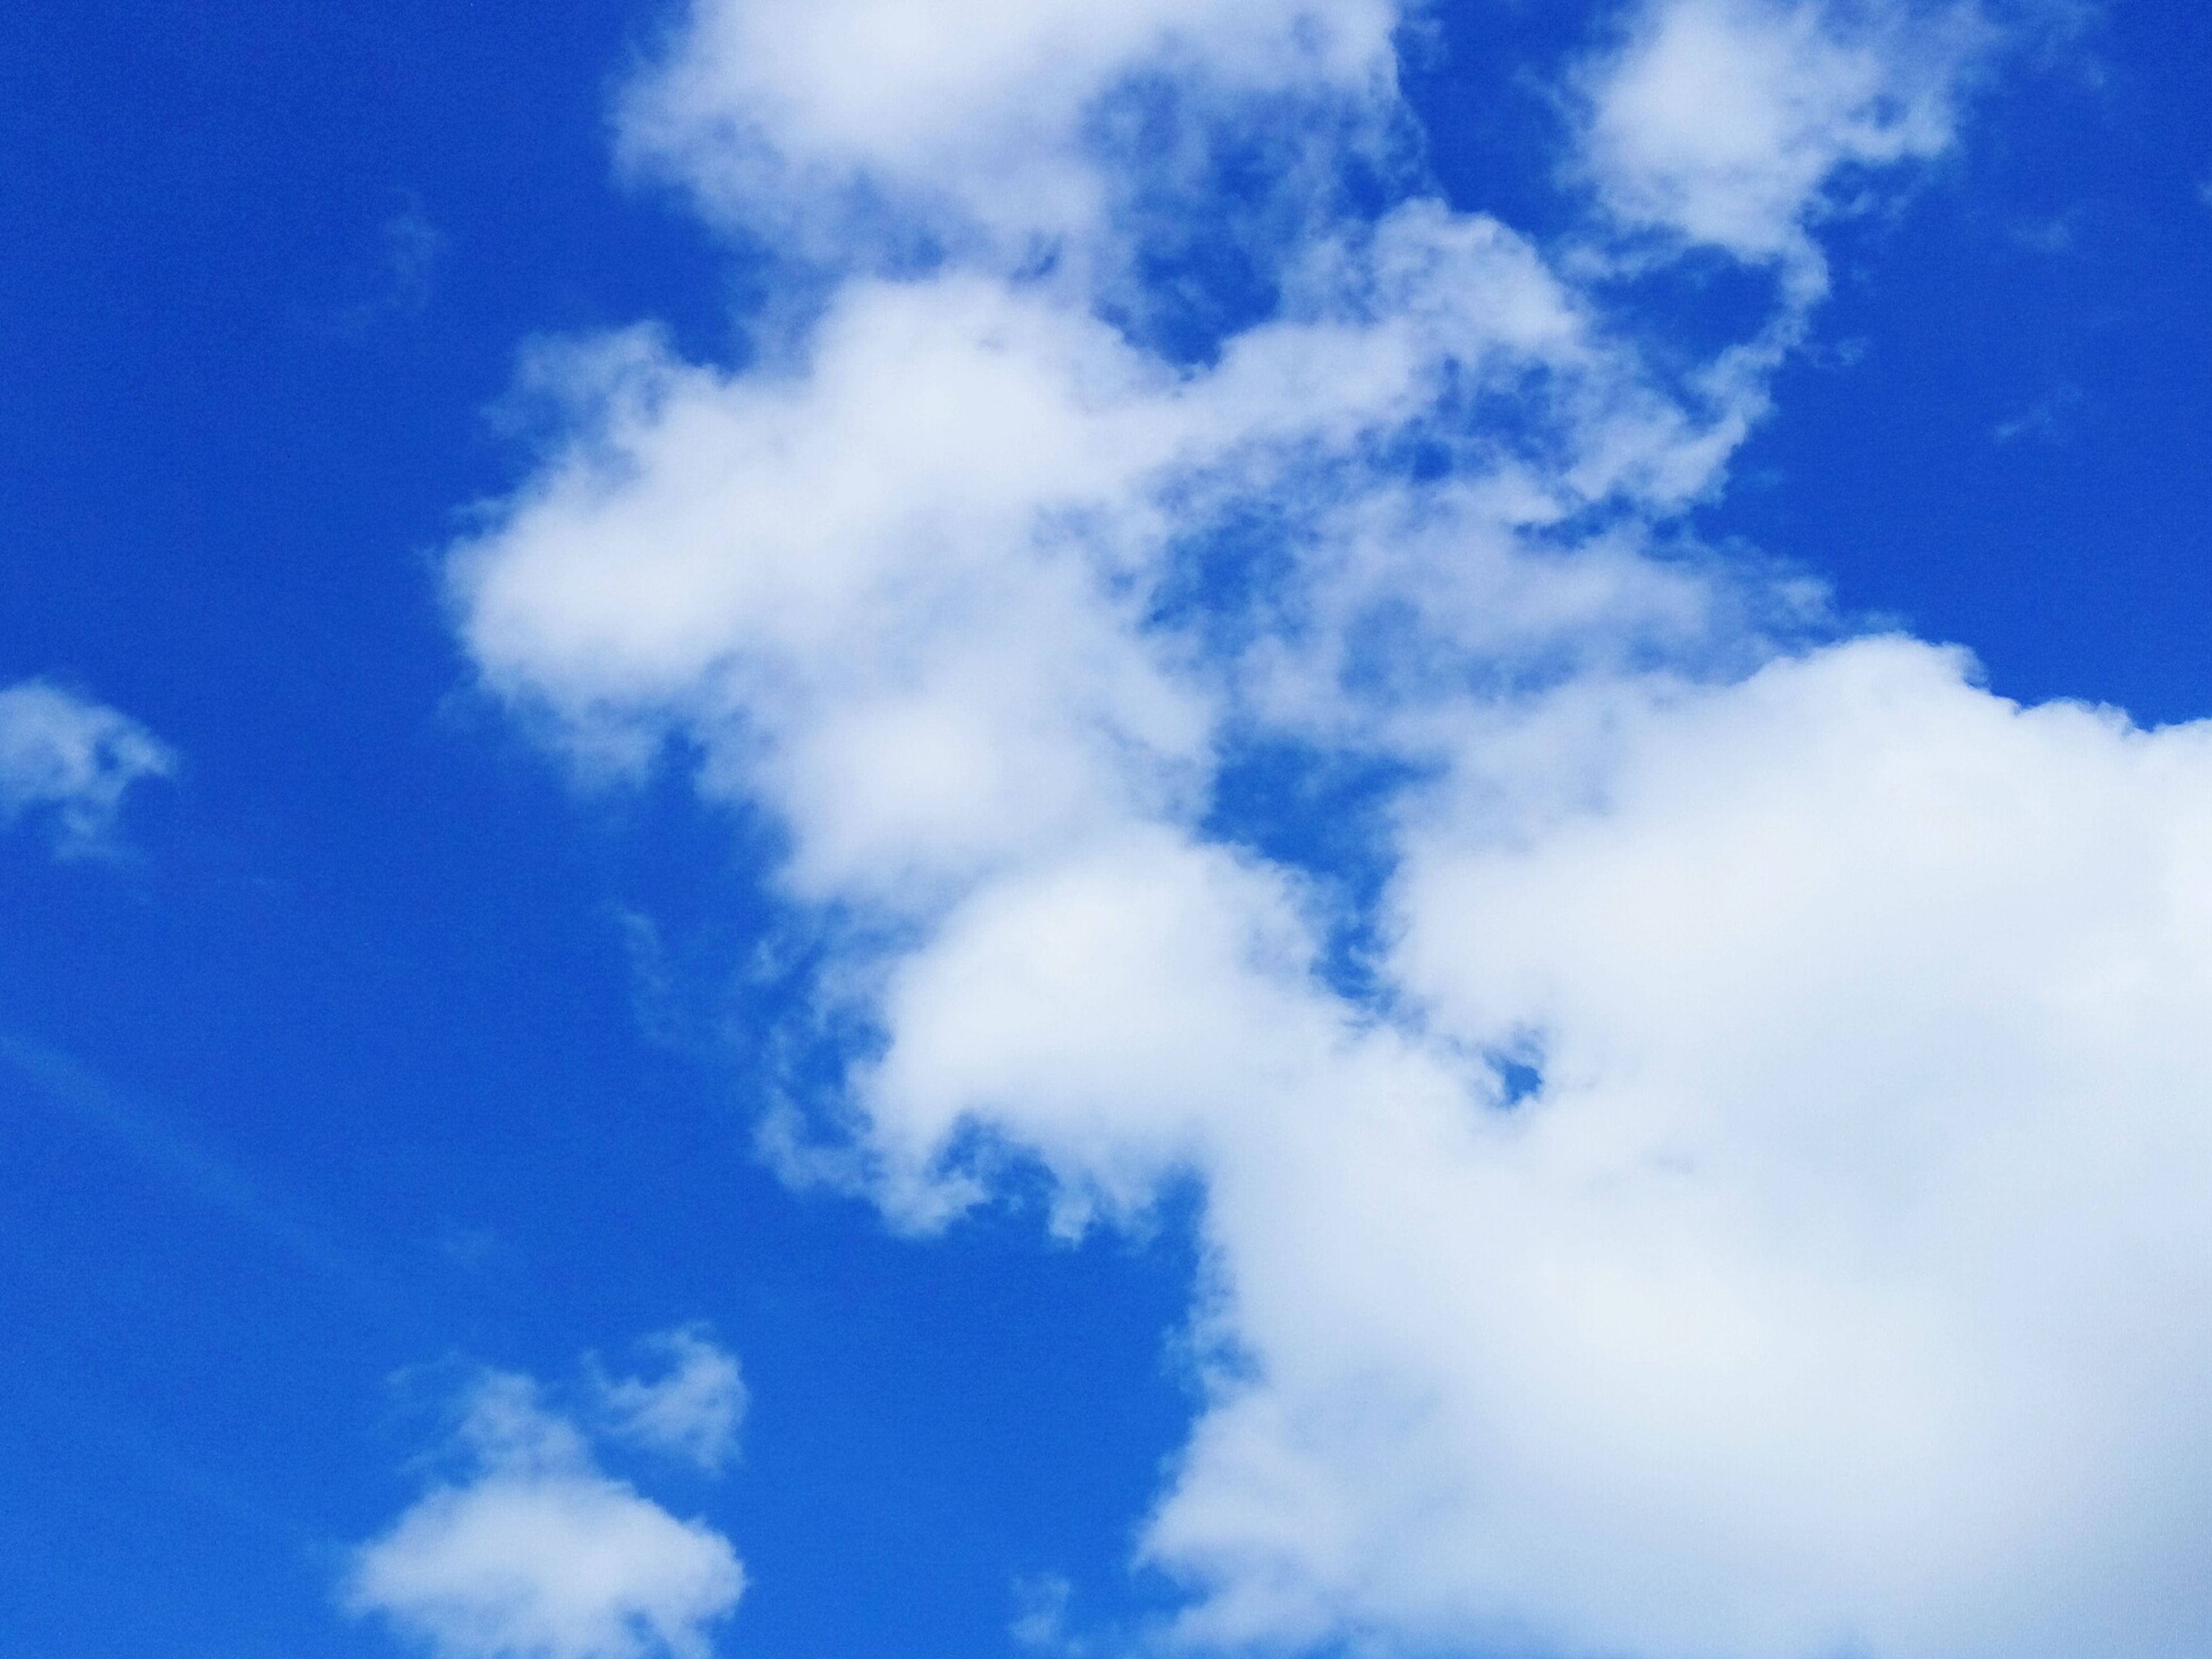 blue, sky, low angle view, sky only, beauty in nature, cloud - sky, tranquility, nature, scenics, backgrounds, tranquil scene, cloud, white color, cloudscape, full frame, day, outdoors, idyllic, cloudy, no people